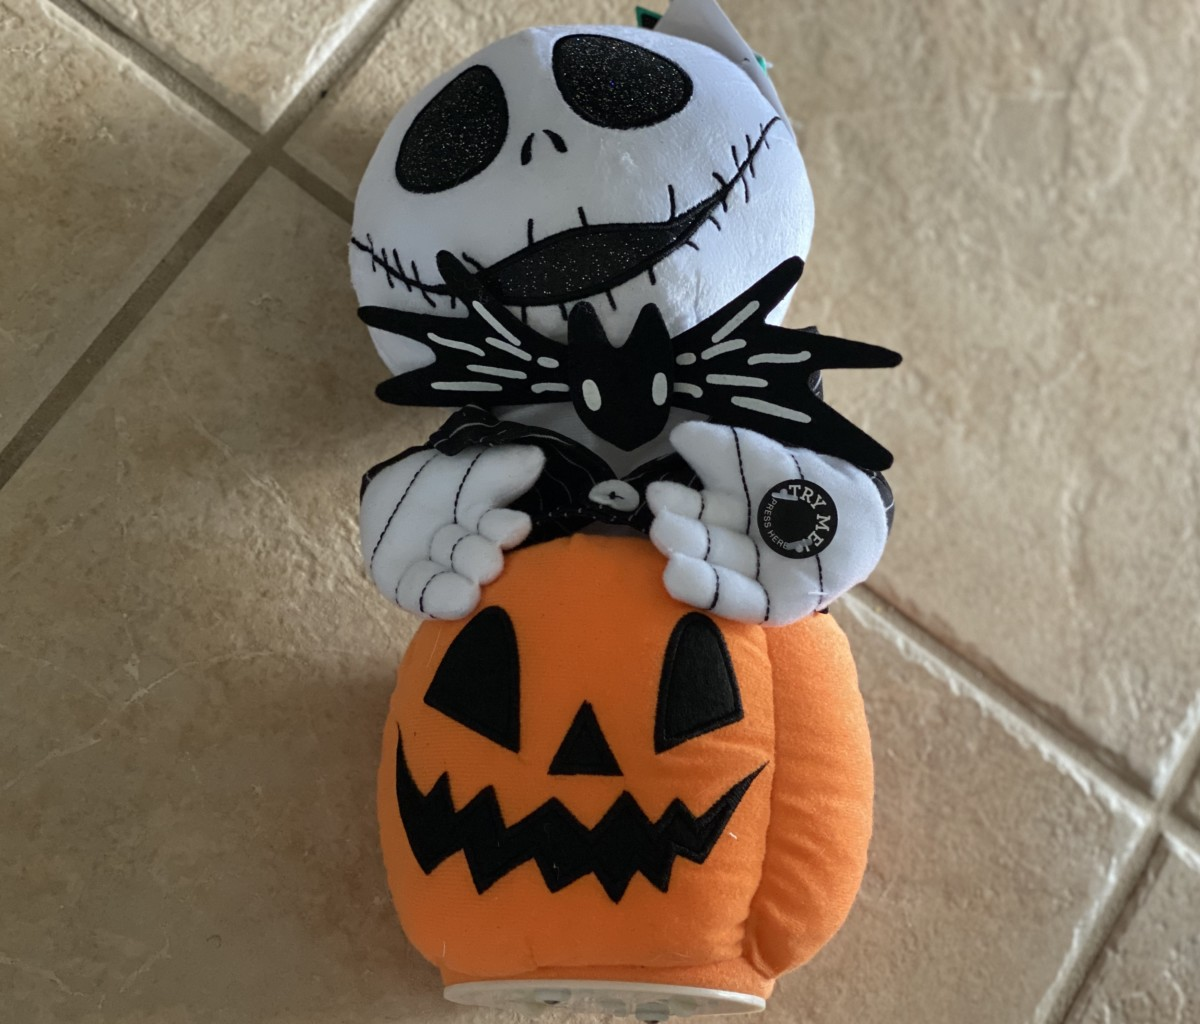 New Nightmare Before Christmas Merch at Walgreens! 2